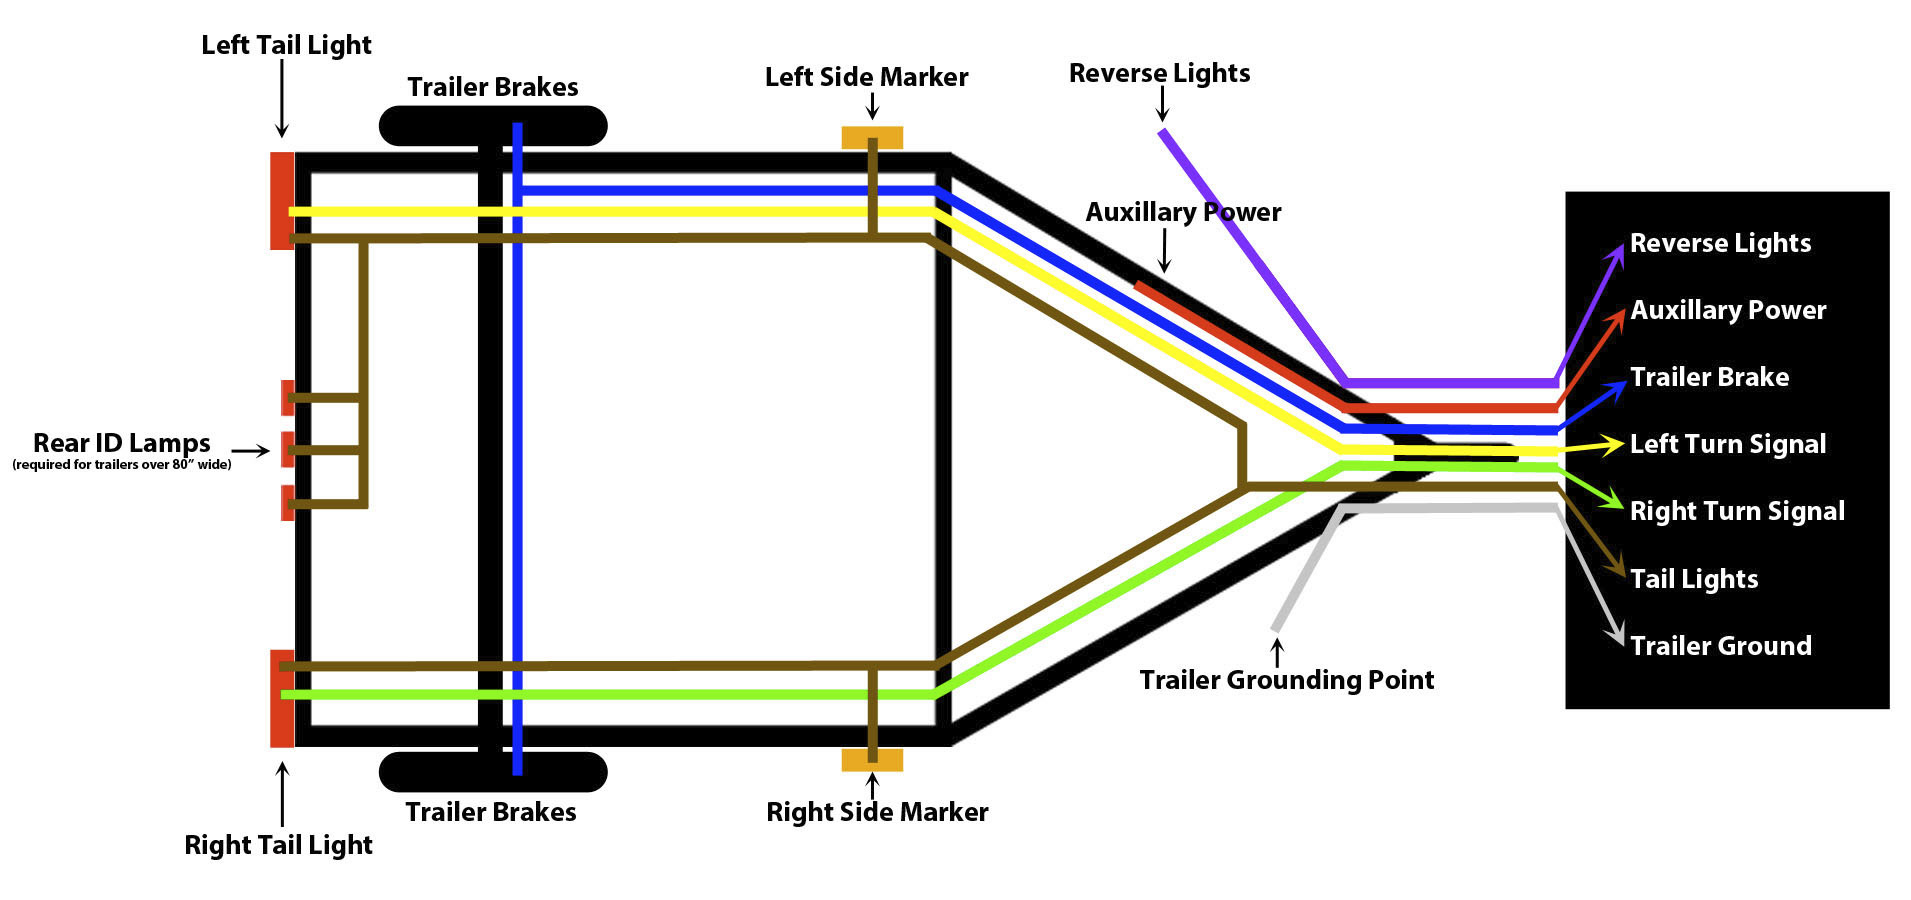 How To Wire Trailer Lights - Trailer Wiring Guide & Videos - 6 Pole Trailer Wiring Diagram